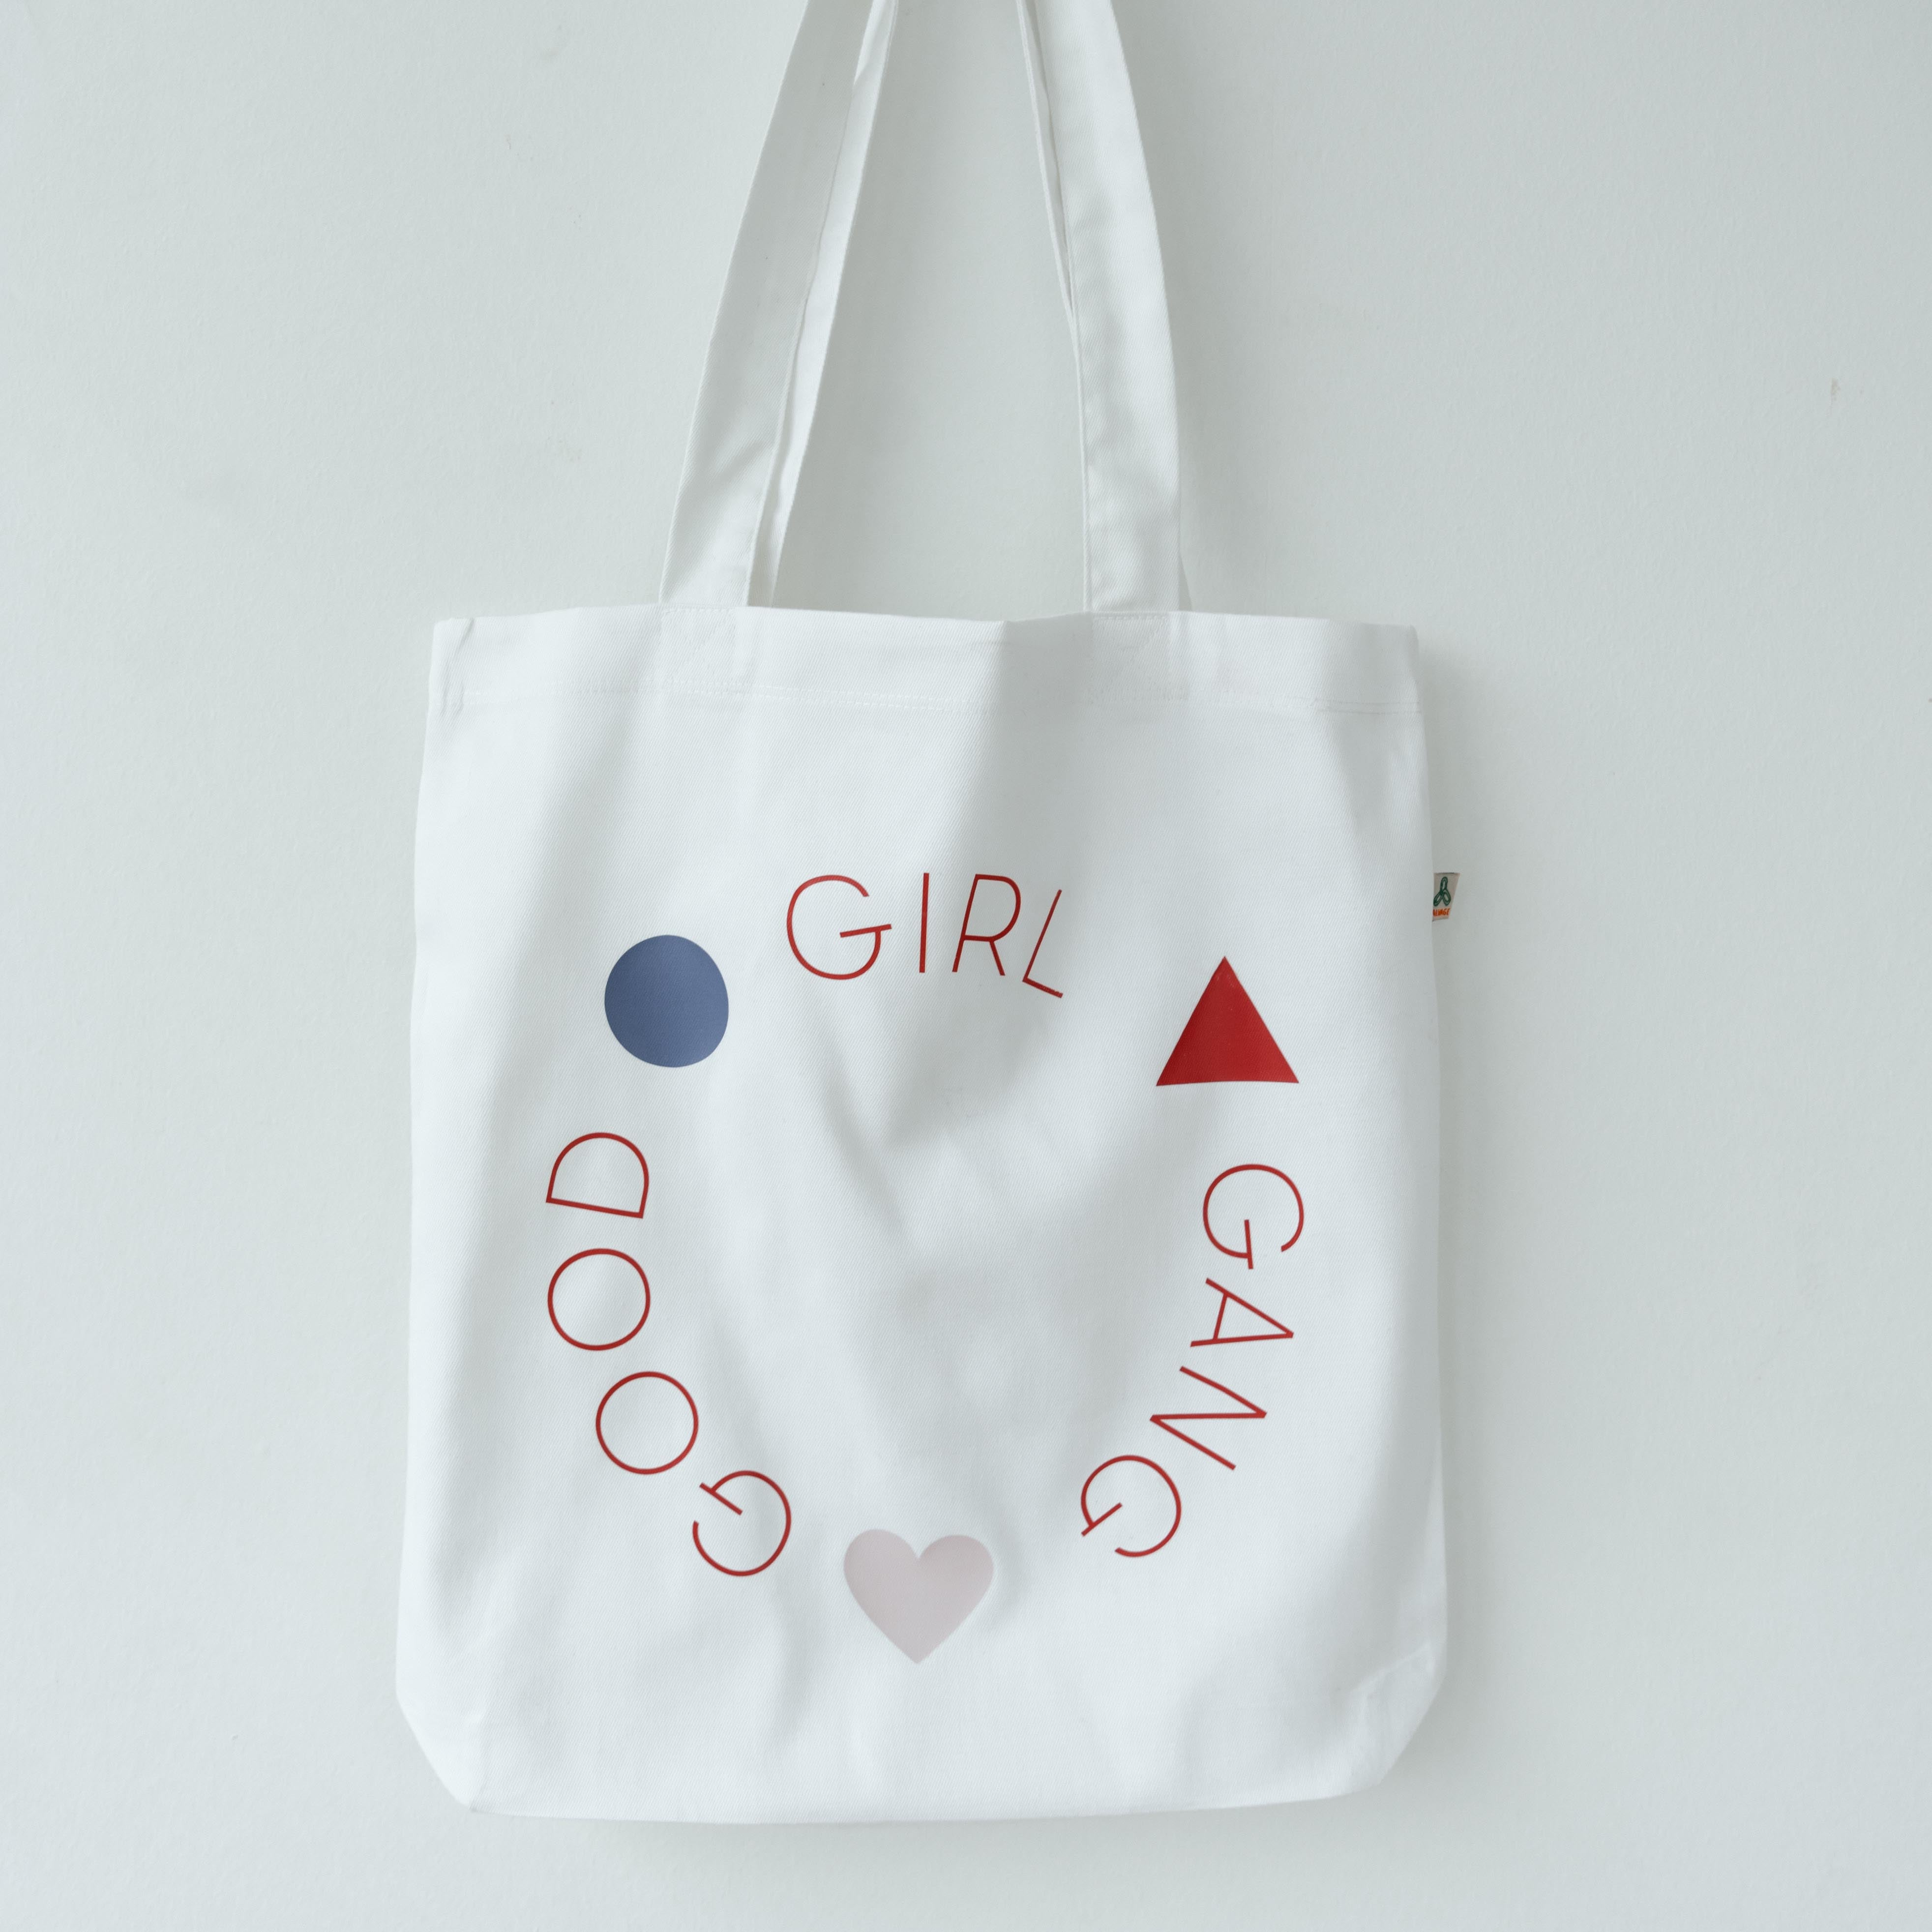 GOOD GIRL GANG TASCHE